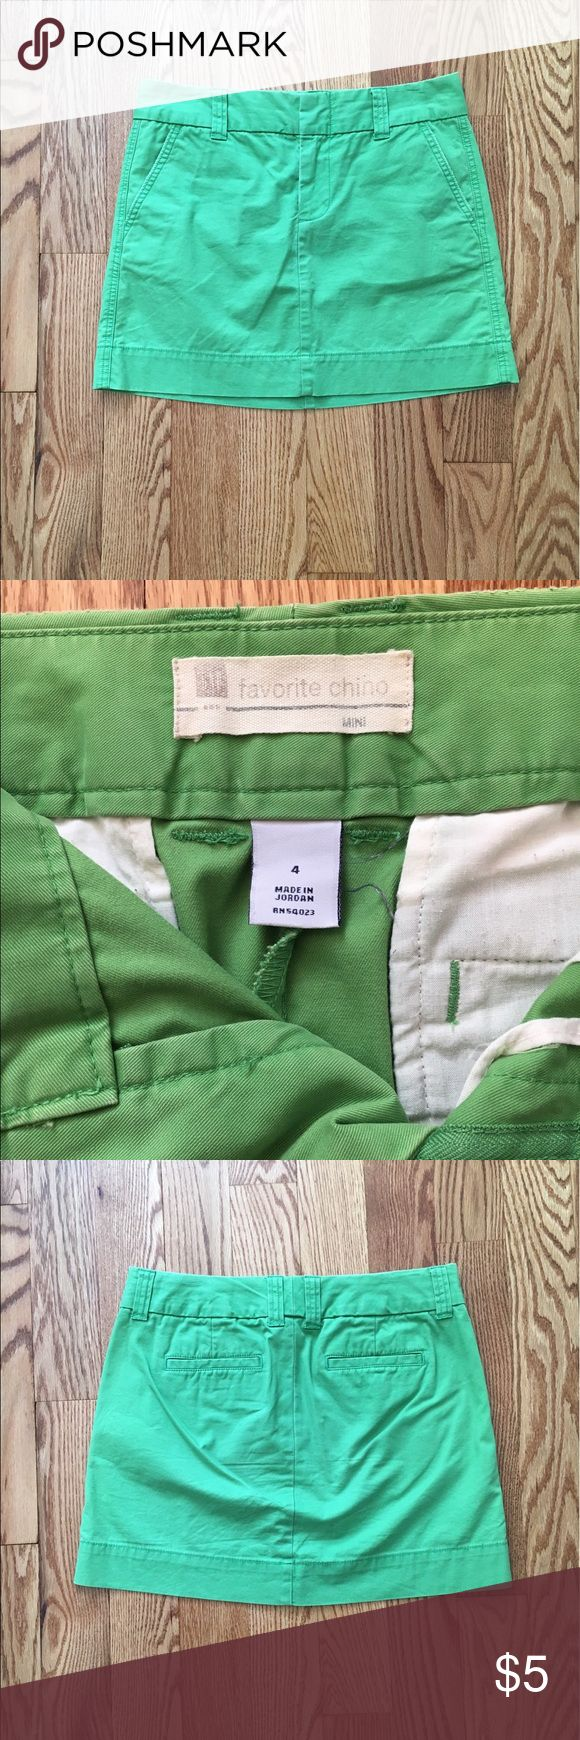 "Bright green mini skirt Super cute, bright green, chino/khaki style mini skirt from Gap Outlet. Such a fun green fir spring & summer! The color is more of yellow-green in person, 2nd picture is better idea of color in person - it's really cute & fun. 15"" long. Gap Outlet Skirts Mini"